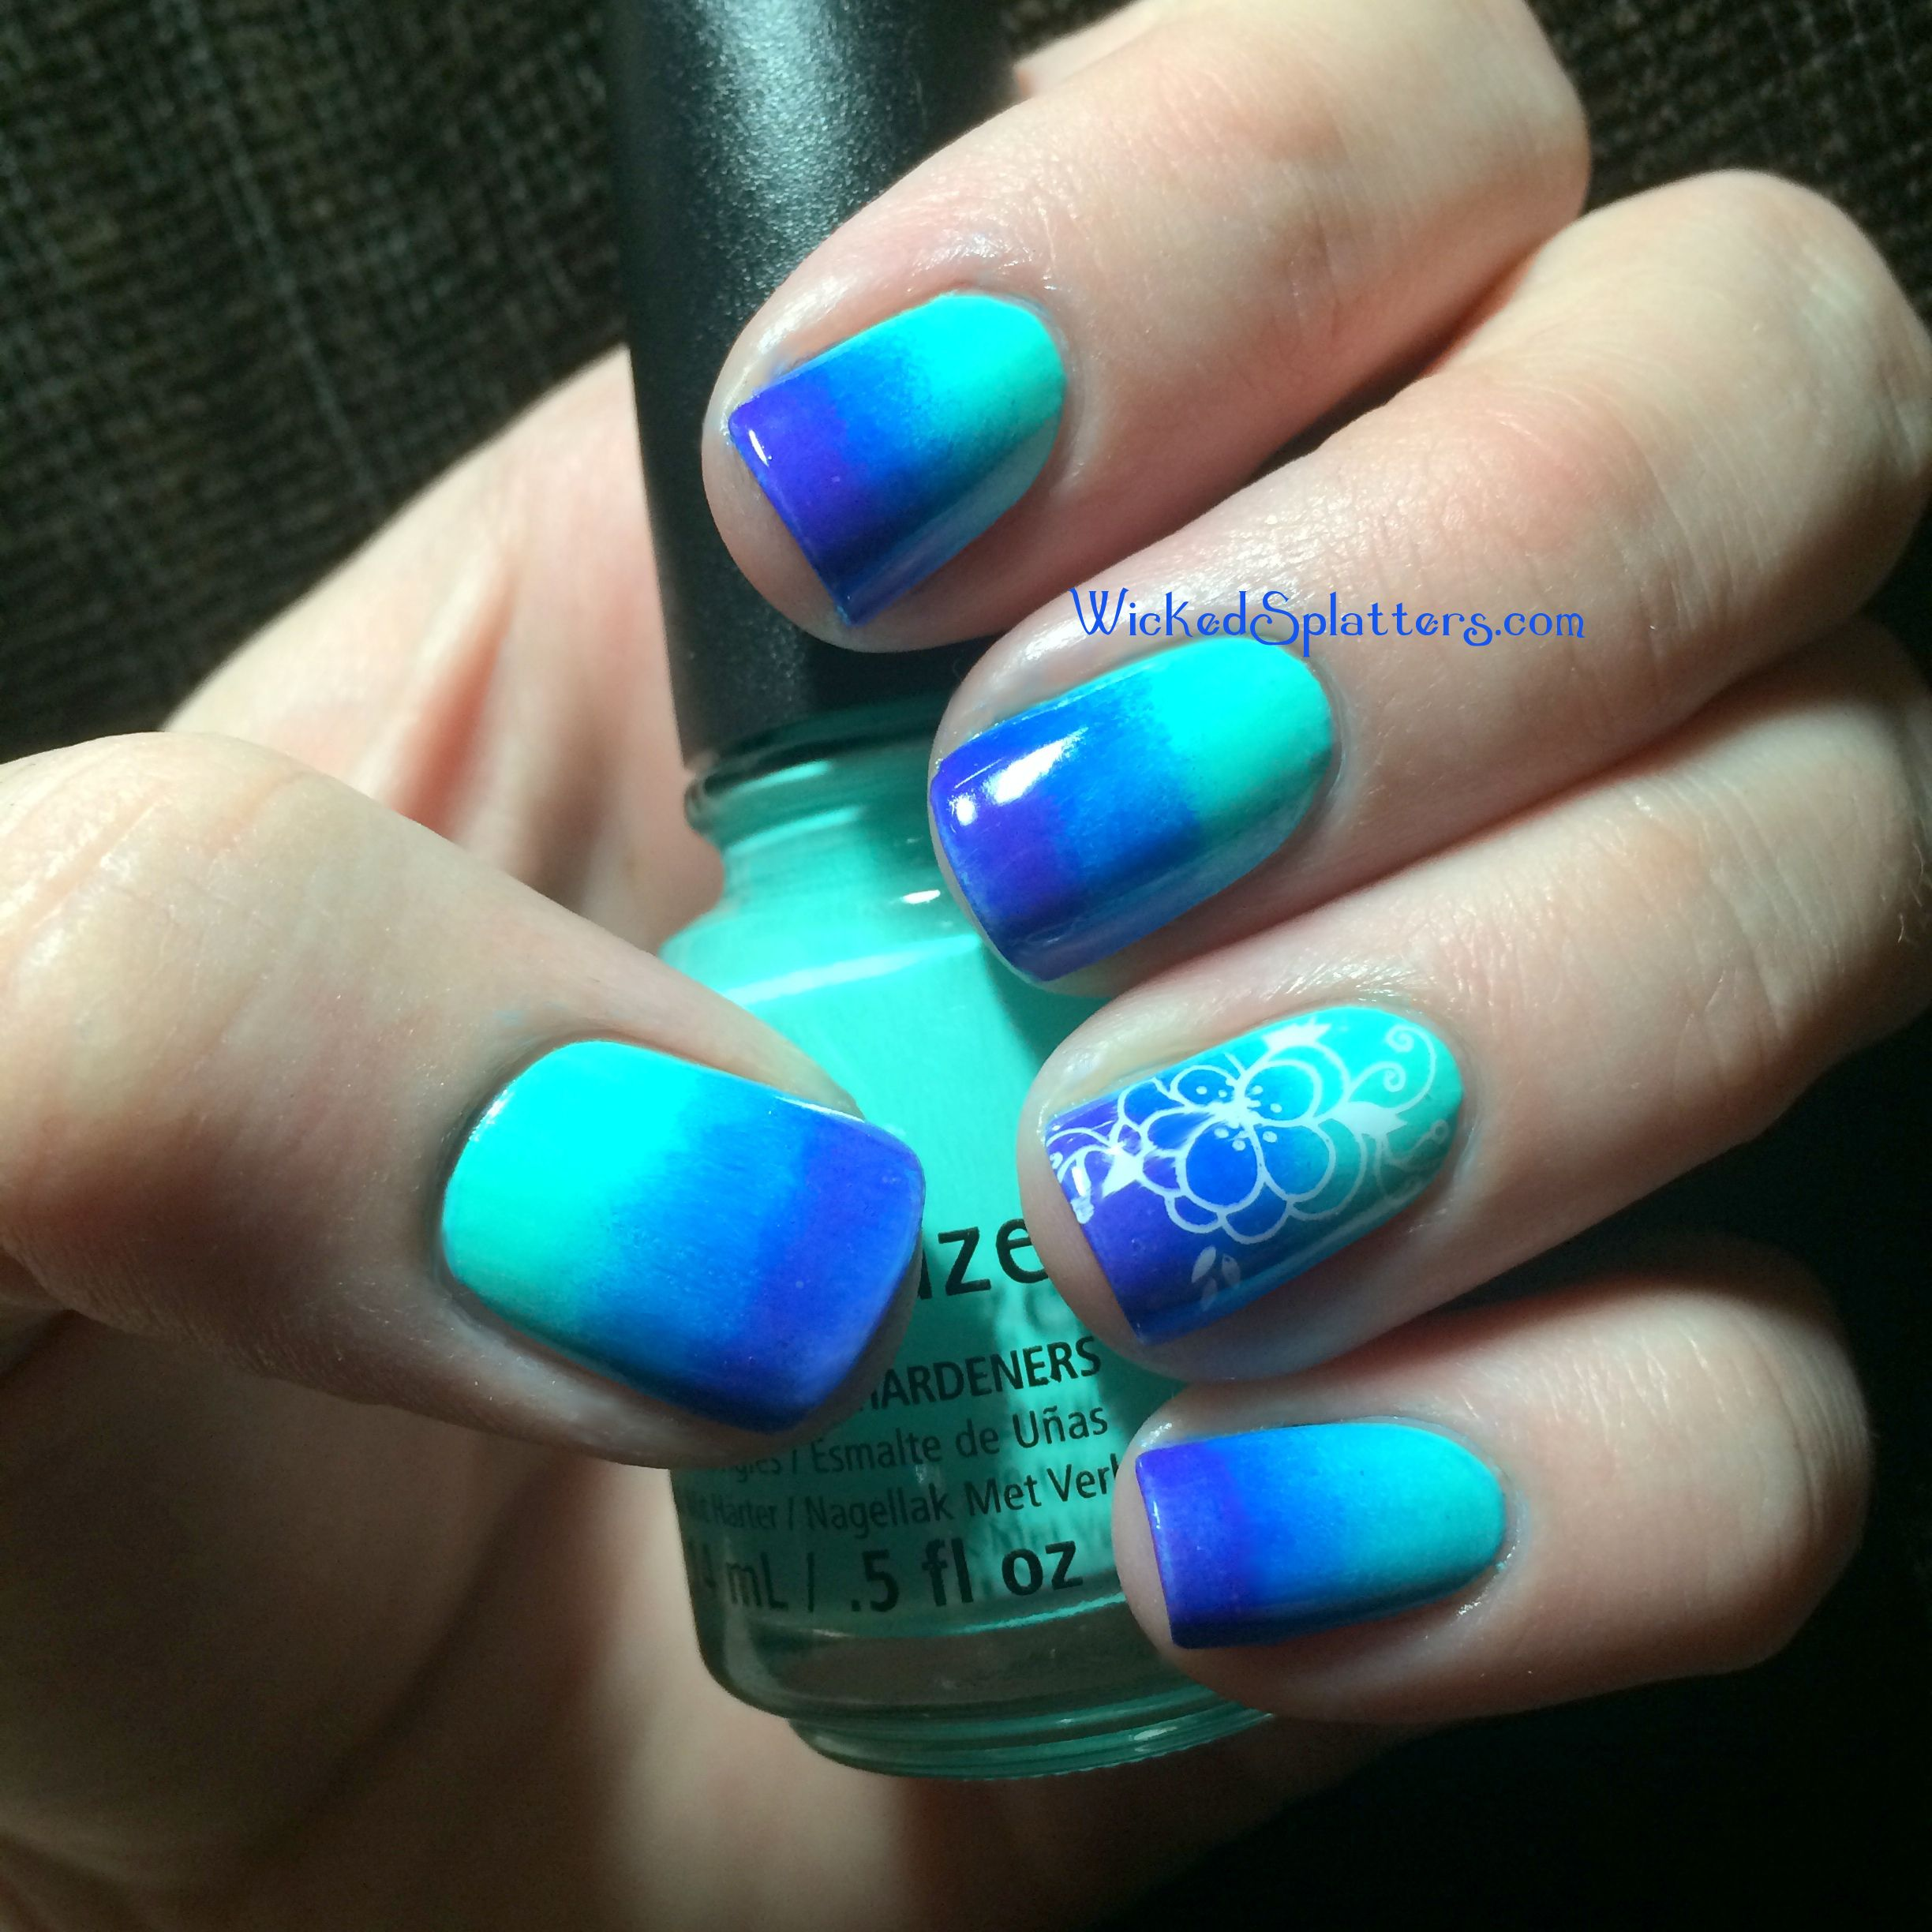 teal ombre nails | displaying 17> images for - ombre nails purple